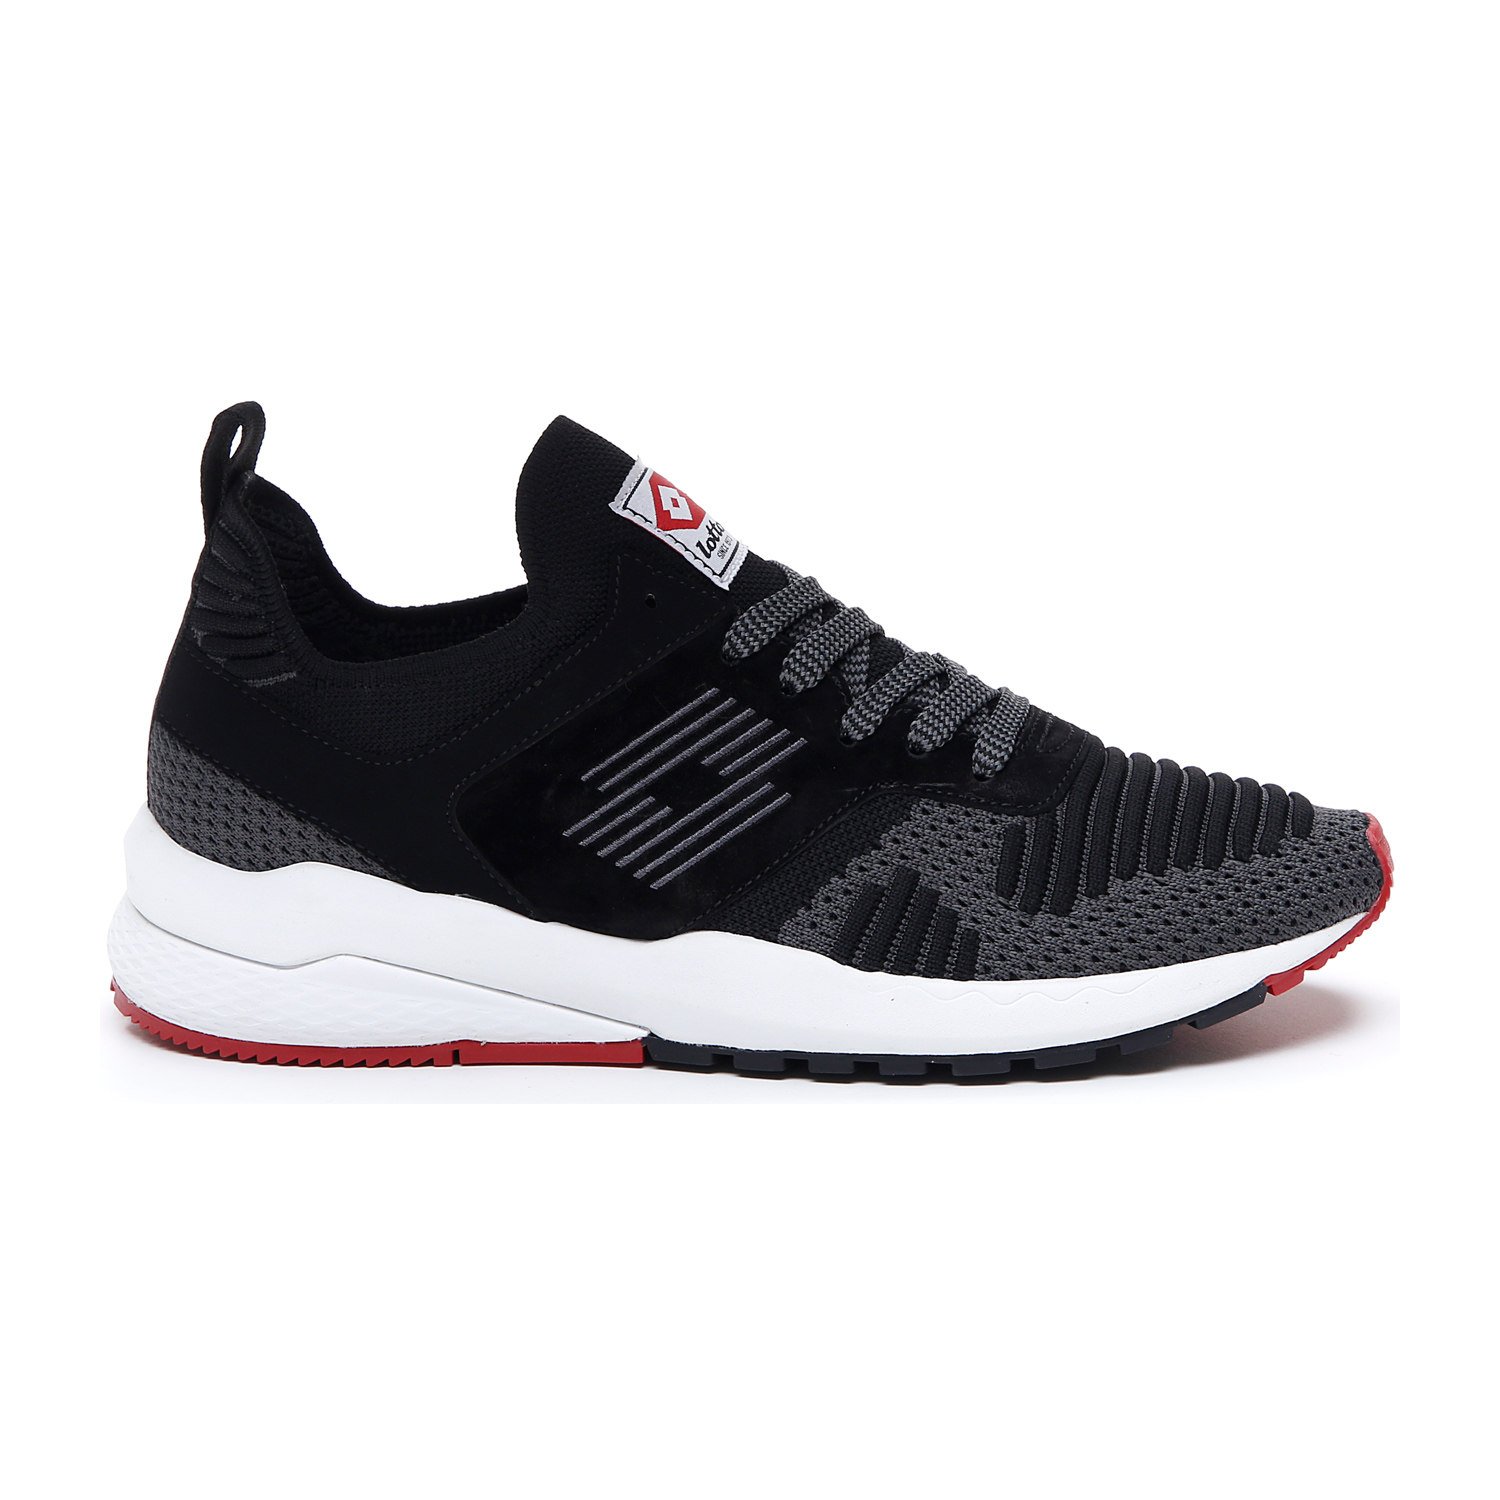 sports shoes e181a 702ac Lotto Sport Italia - Footwear, clothing and accessories for ...